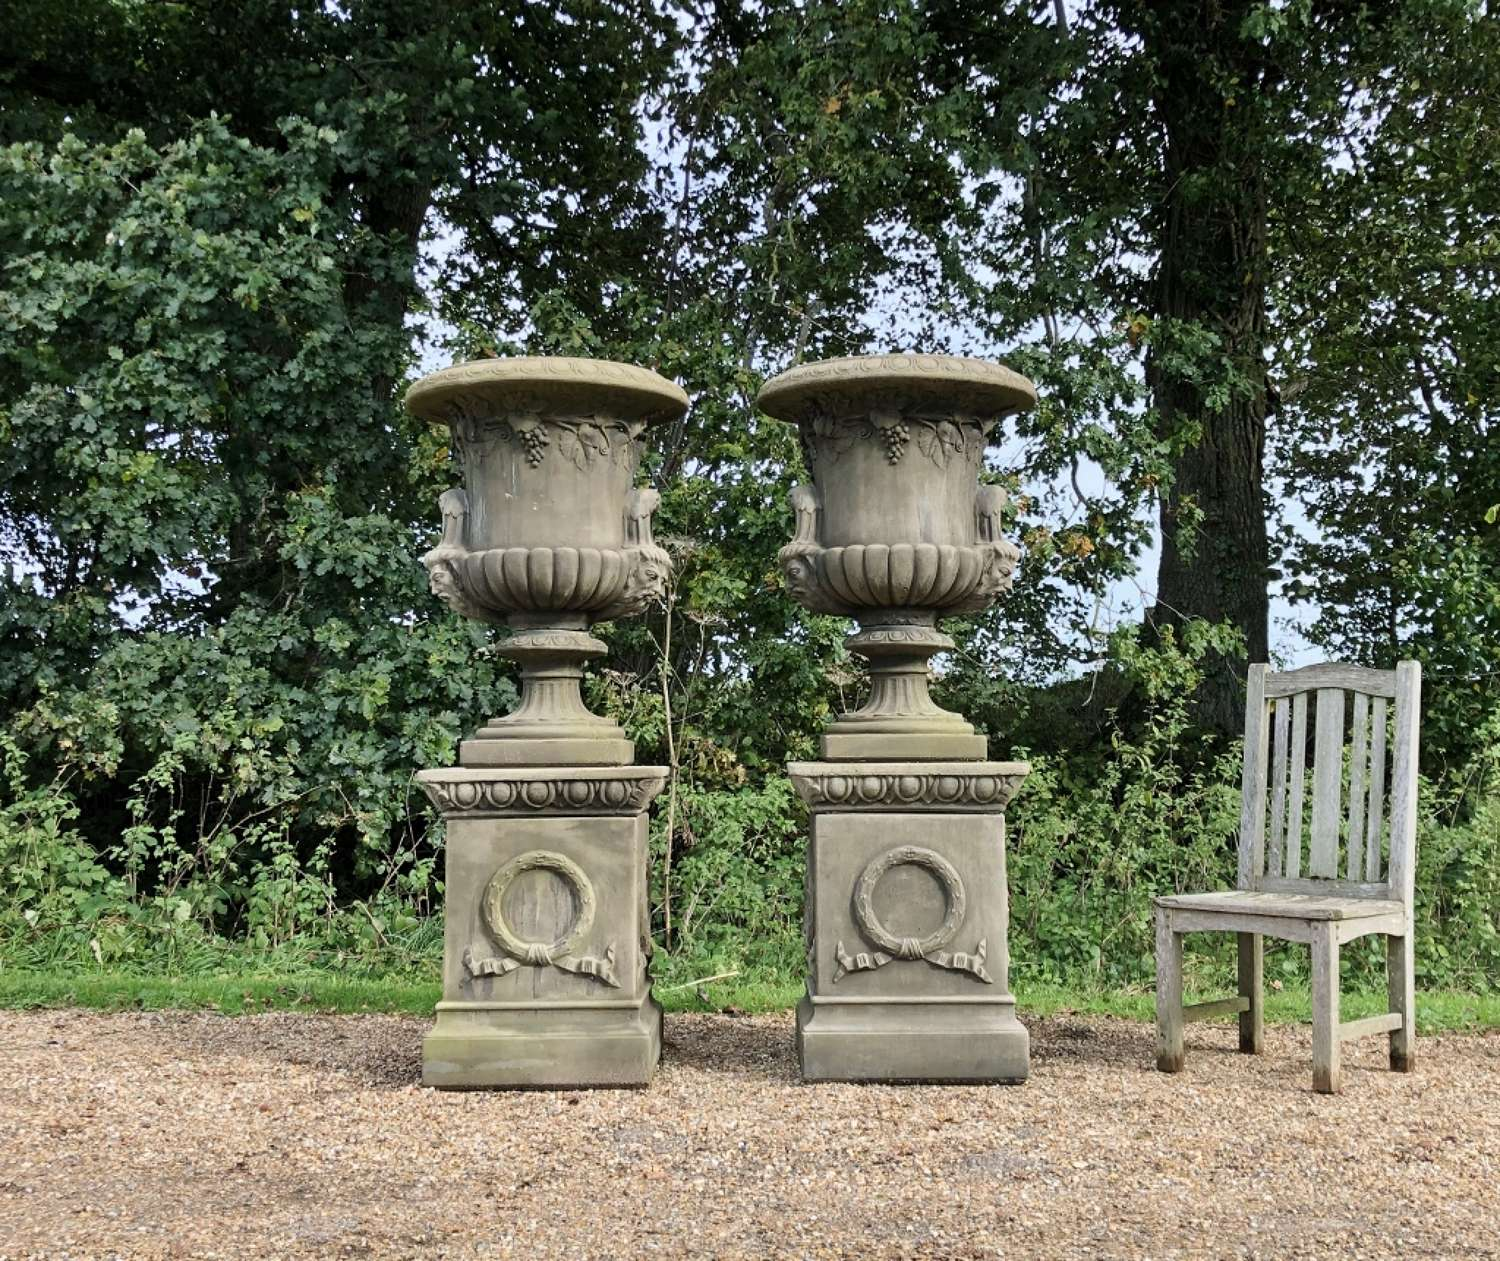 Large handled Urns on Pedestals